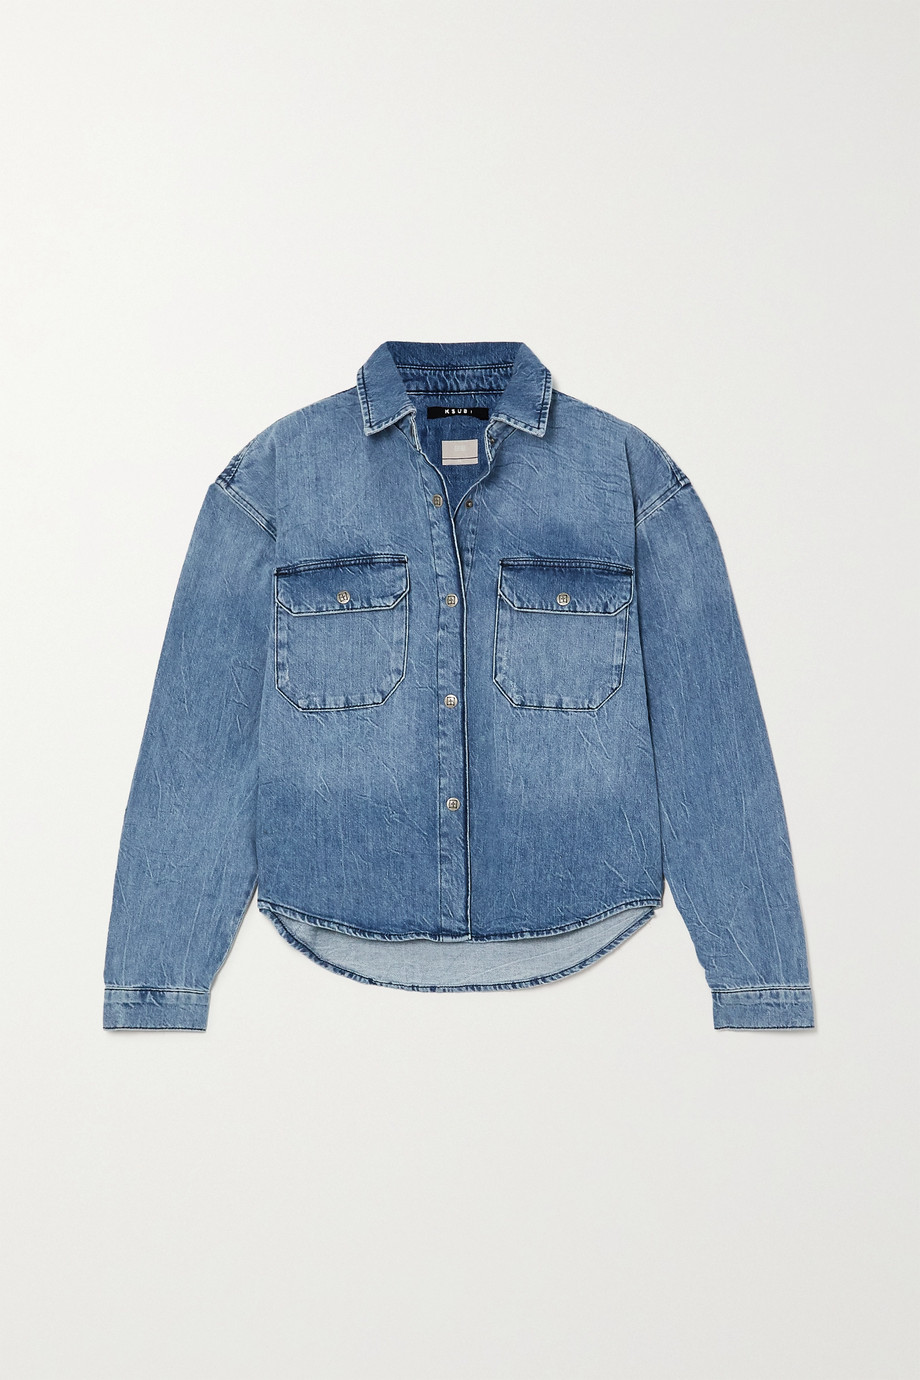 Ksubi Relaxo distressed denim shirt